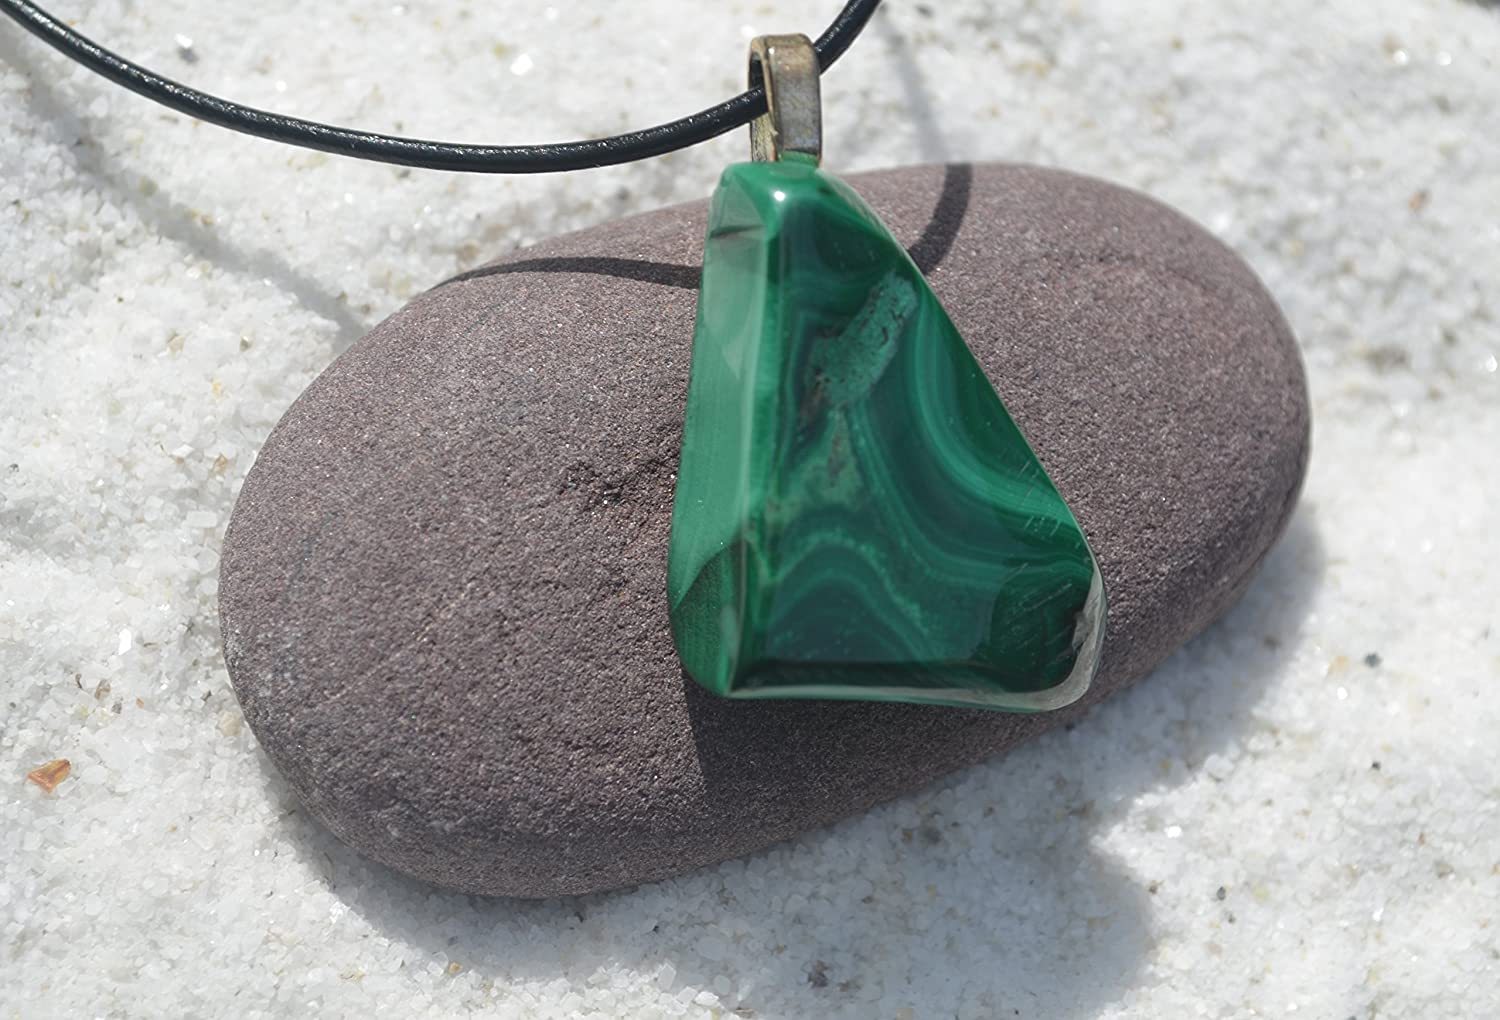 32 x 14 mm  1.26 x 0.55 inch Malachite on leather strap  cotton cord necklace -- stone size